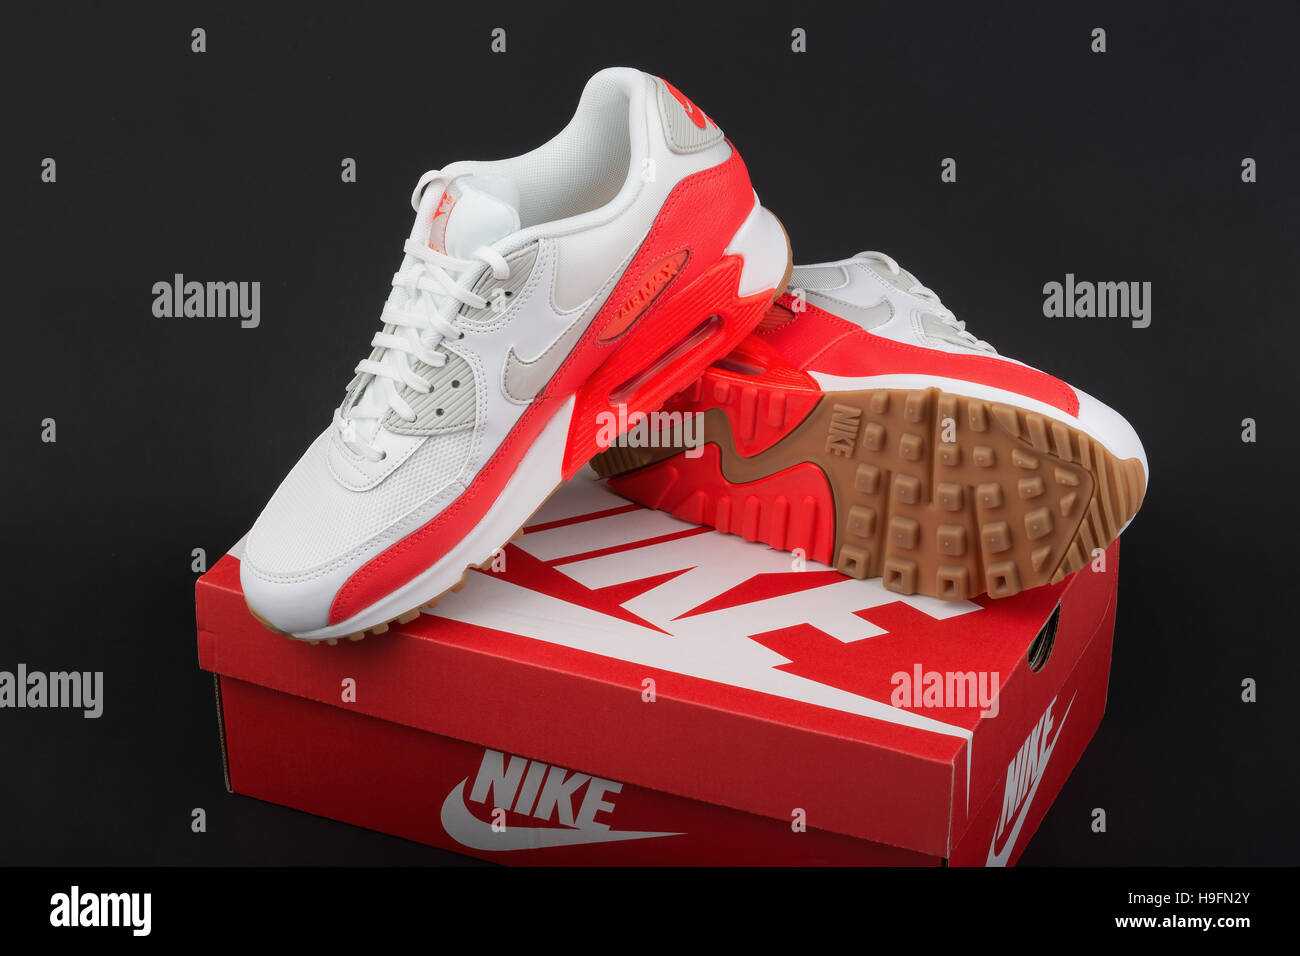 82764632 BURGAS, BULGARIA - AUGUST 29, 2016: Nike Air MAX lady's - women's shoes -  sneakers - trainers, in white and orange, illustrative editorial